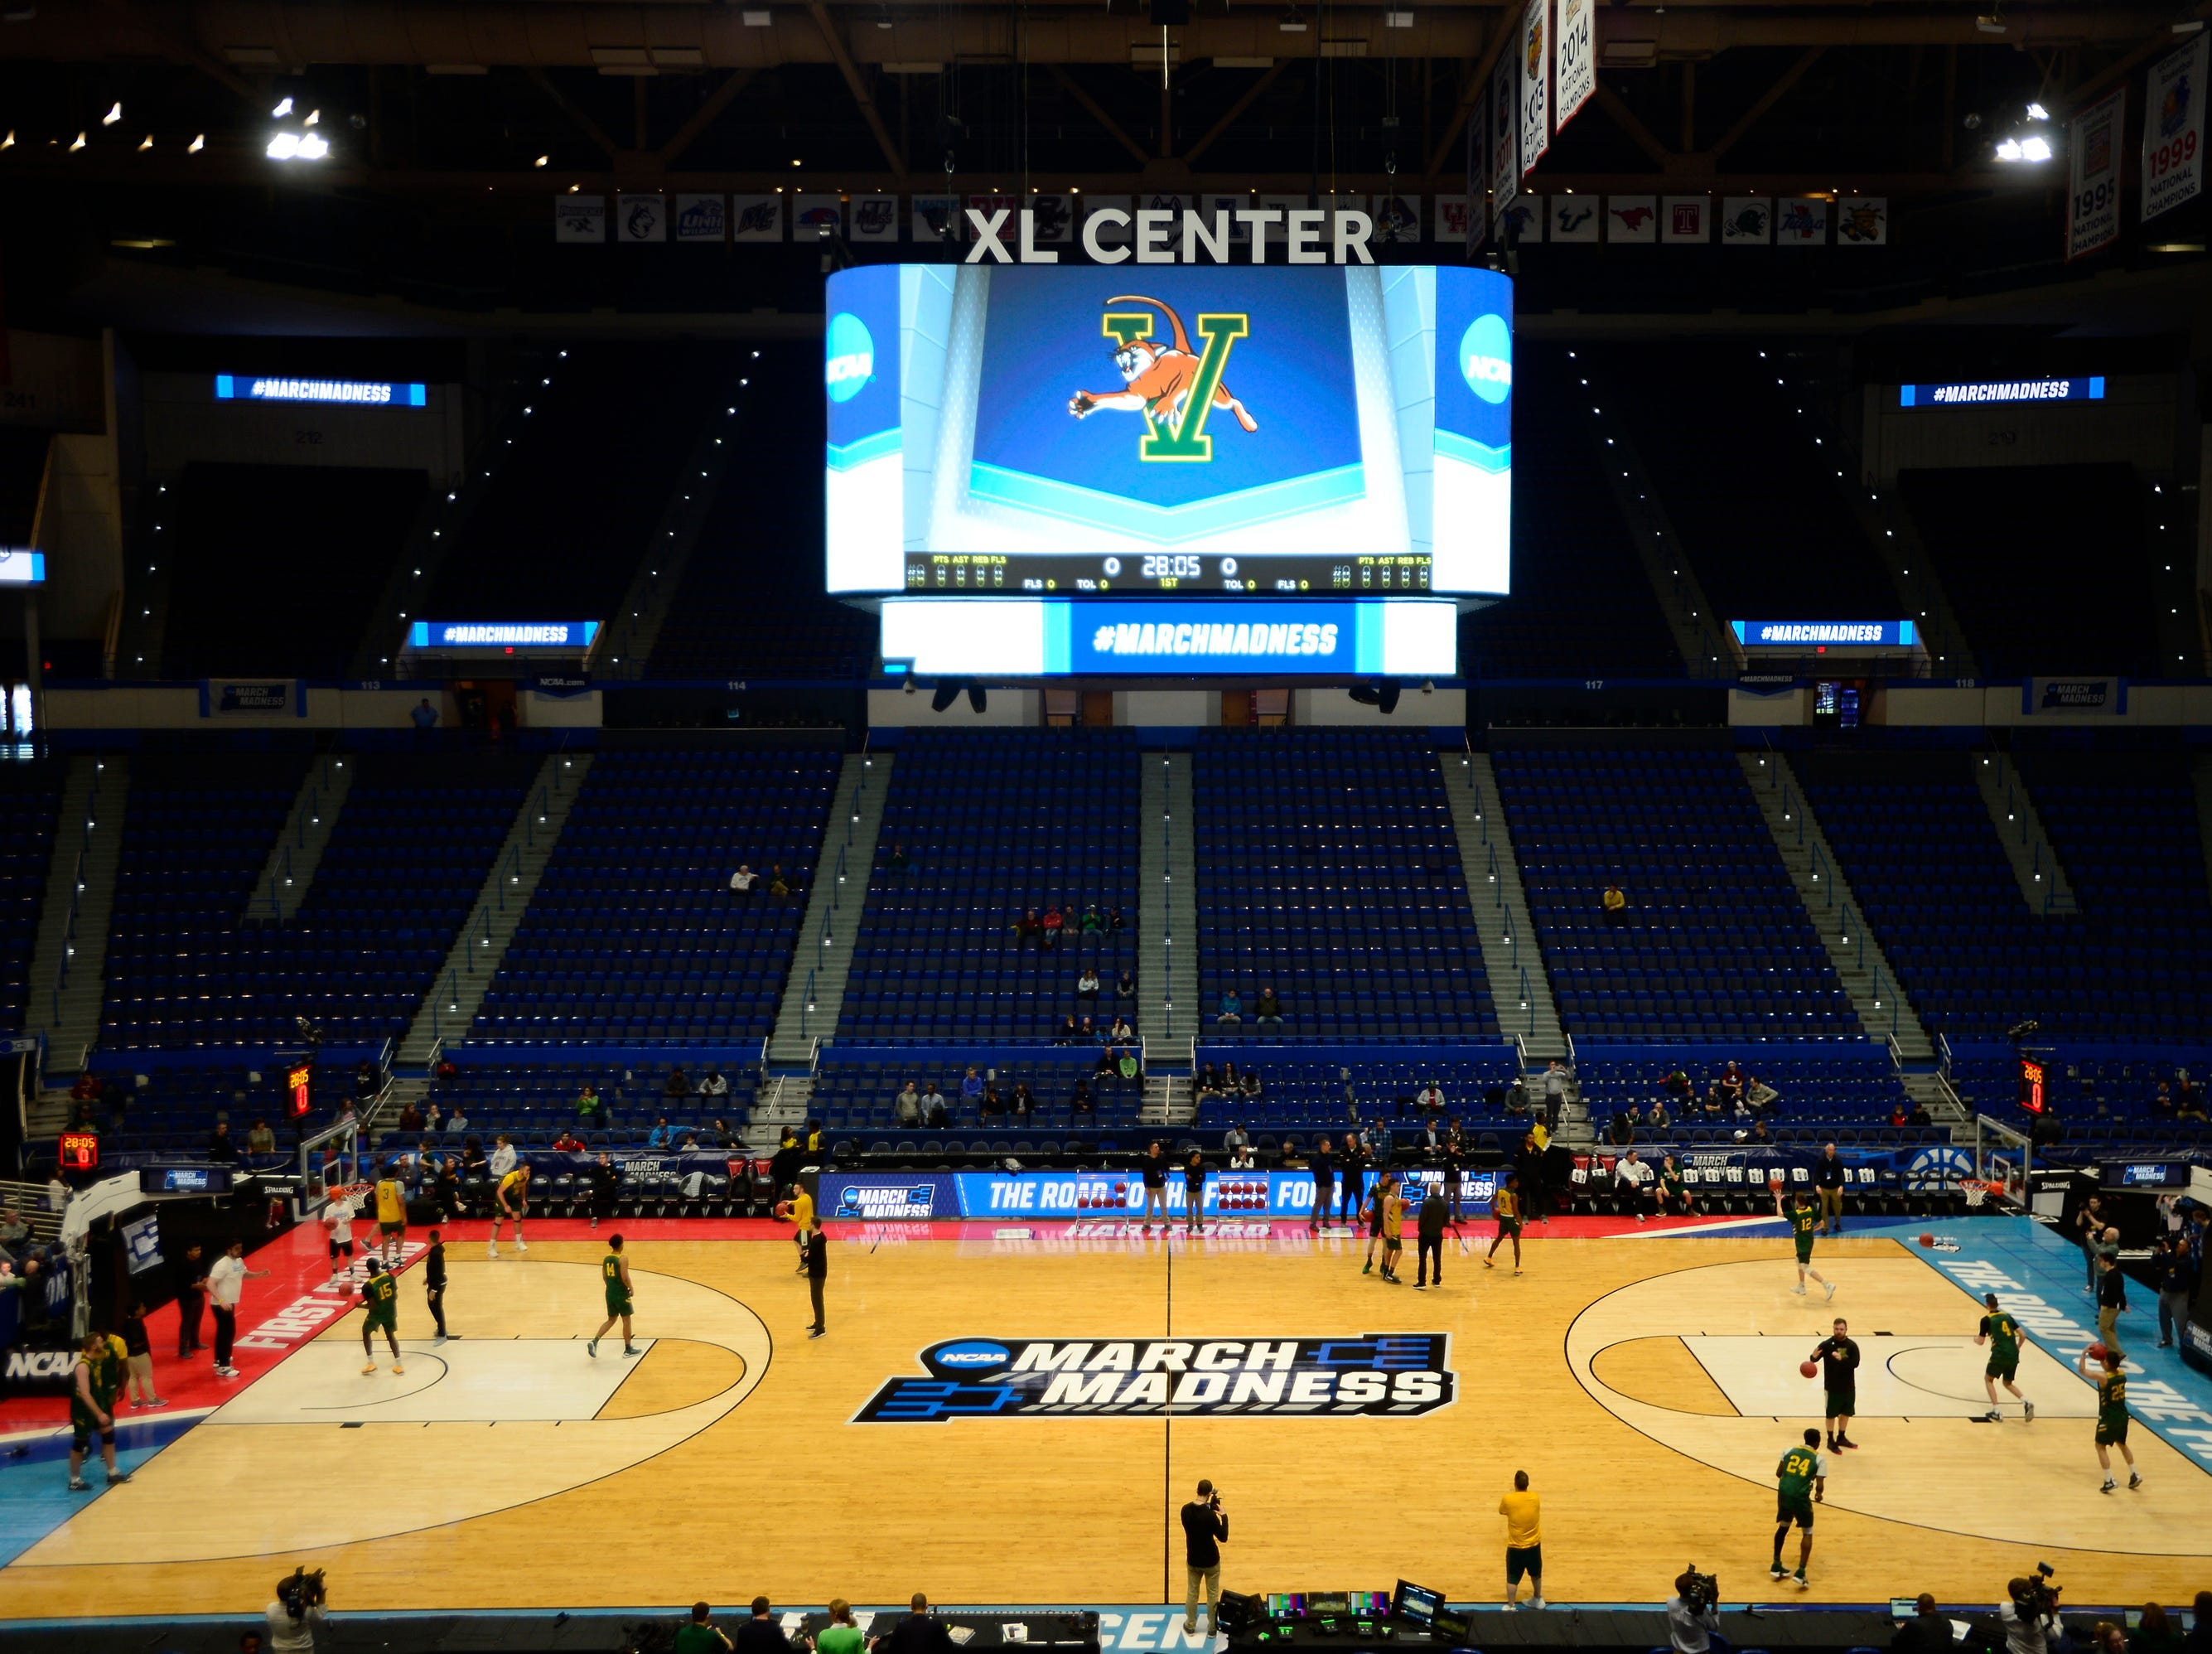 The University of Vermont men's basketball team practices at the XL Center on Wednesday ahead of its NCAA tournament game against Florida State in Hartford, Connecticut.